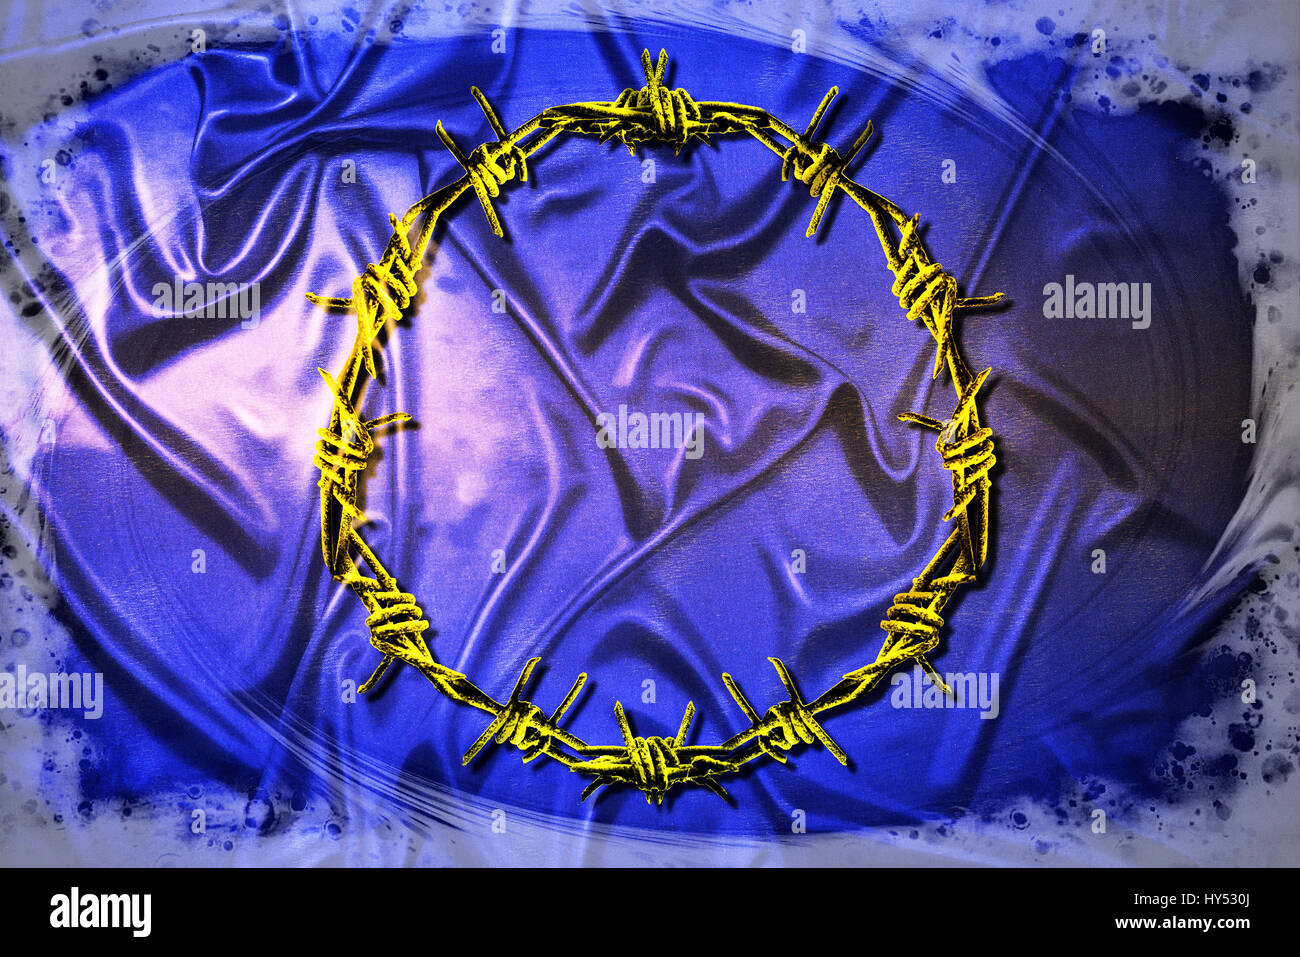 EU flag with barbed wire, symbolic photo refugee's crisis, EU-Fahne mit Stacheldraht, Symbolfoto Fluechtlingskrise - Stock Image